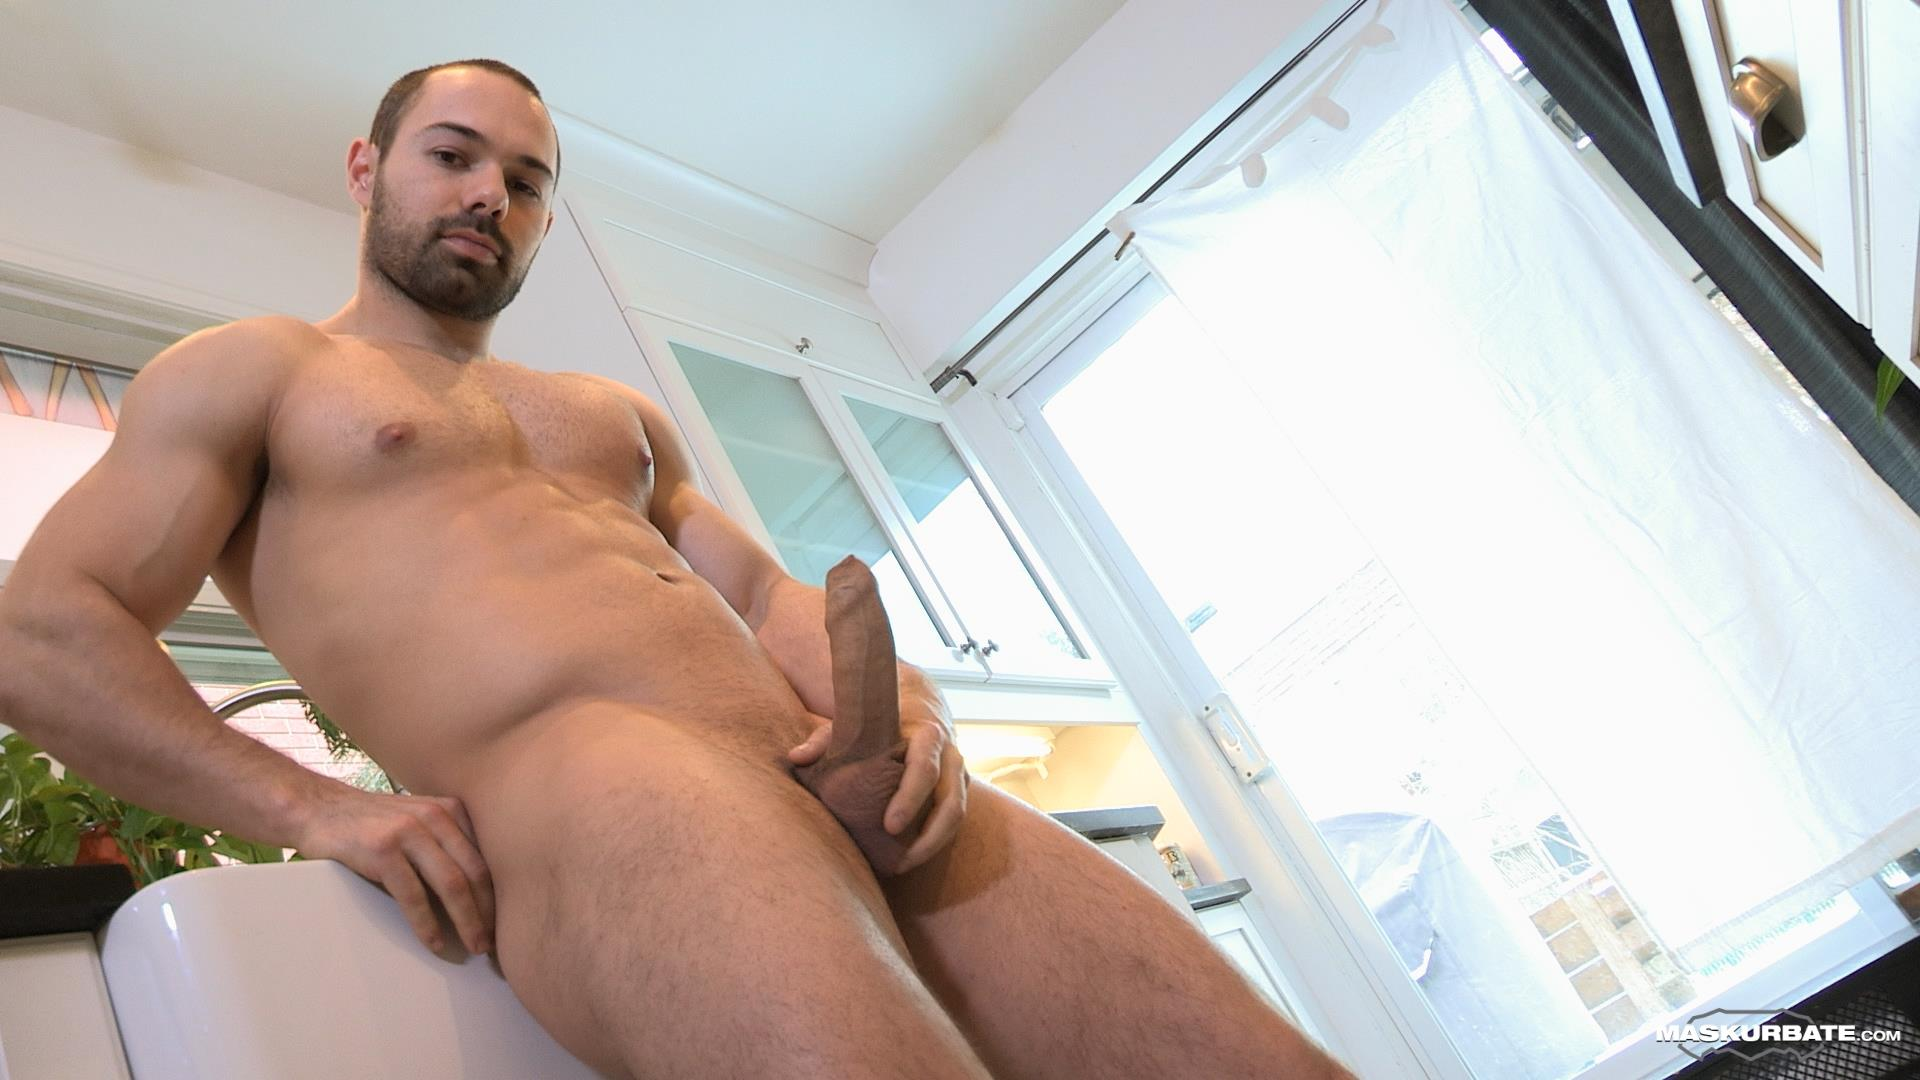 Maskurbate Muscle Hunk With A Big Uncut Cock Jerking Off Amateur Gay Porn 12 The Naked Chef Jerks His Big Uncut Cock In The Kitchen